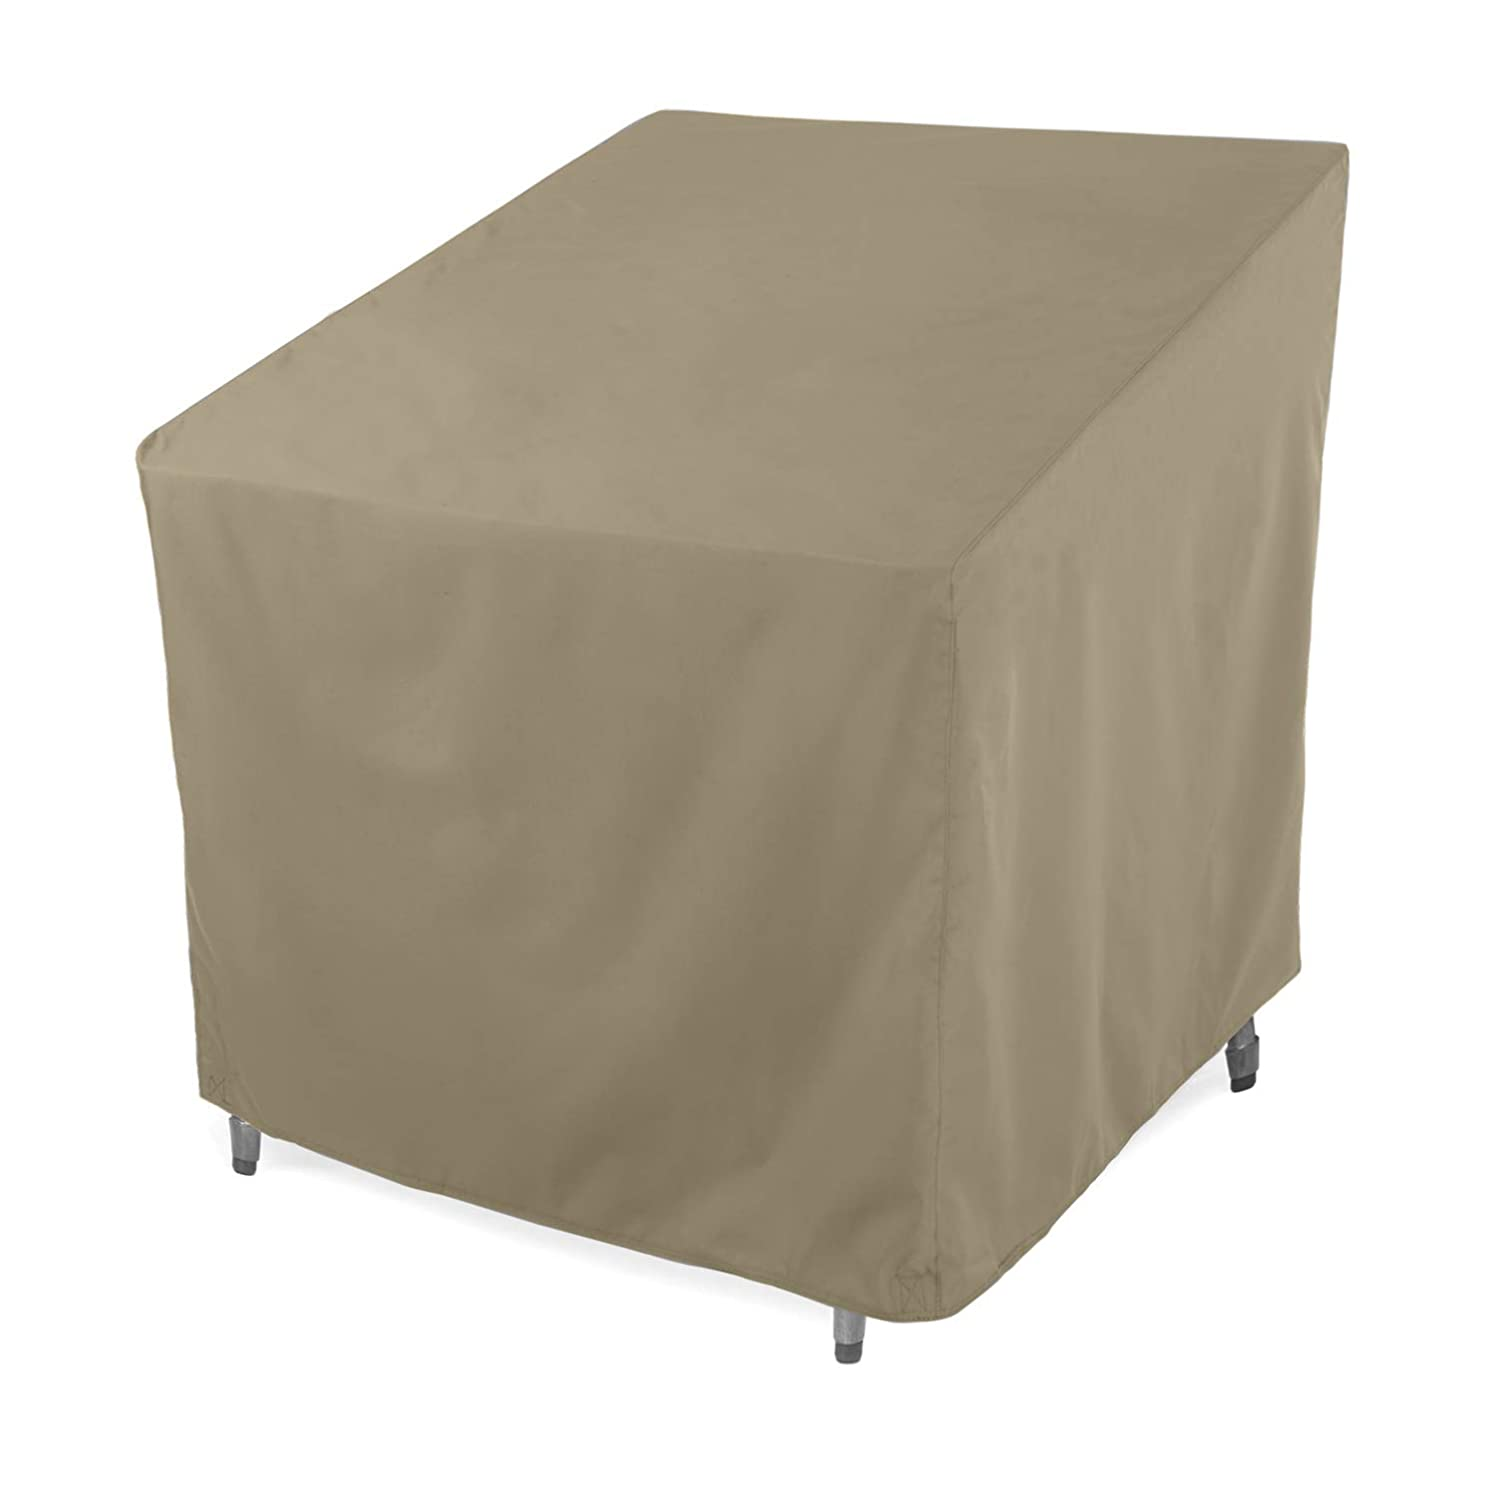 """SunPatio Outdoor Club Chair Cover, Water Resistant, Lightweight, Helpful Air Vents, All Weather Protection, 33.5"""" W x 37"""" D x 36"""" H, Neutral Taupe"""